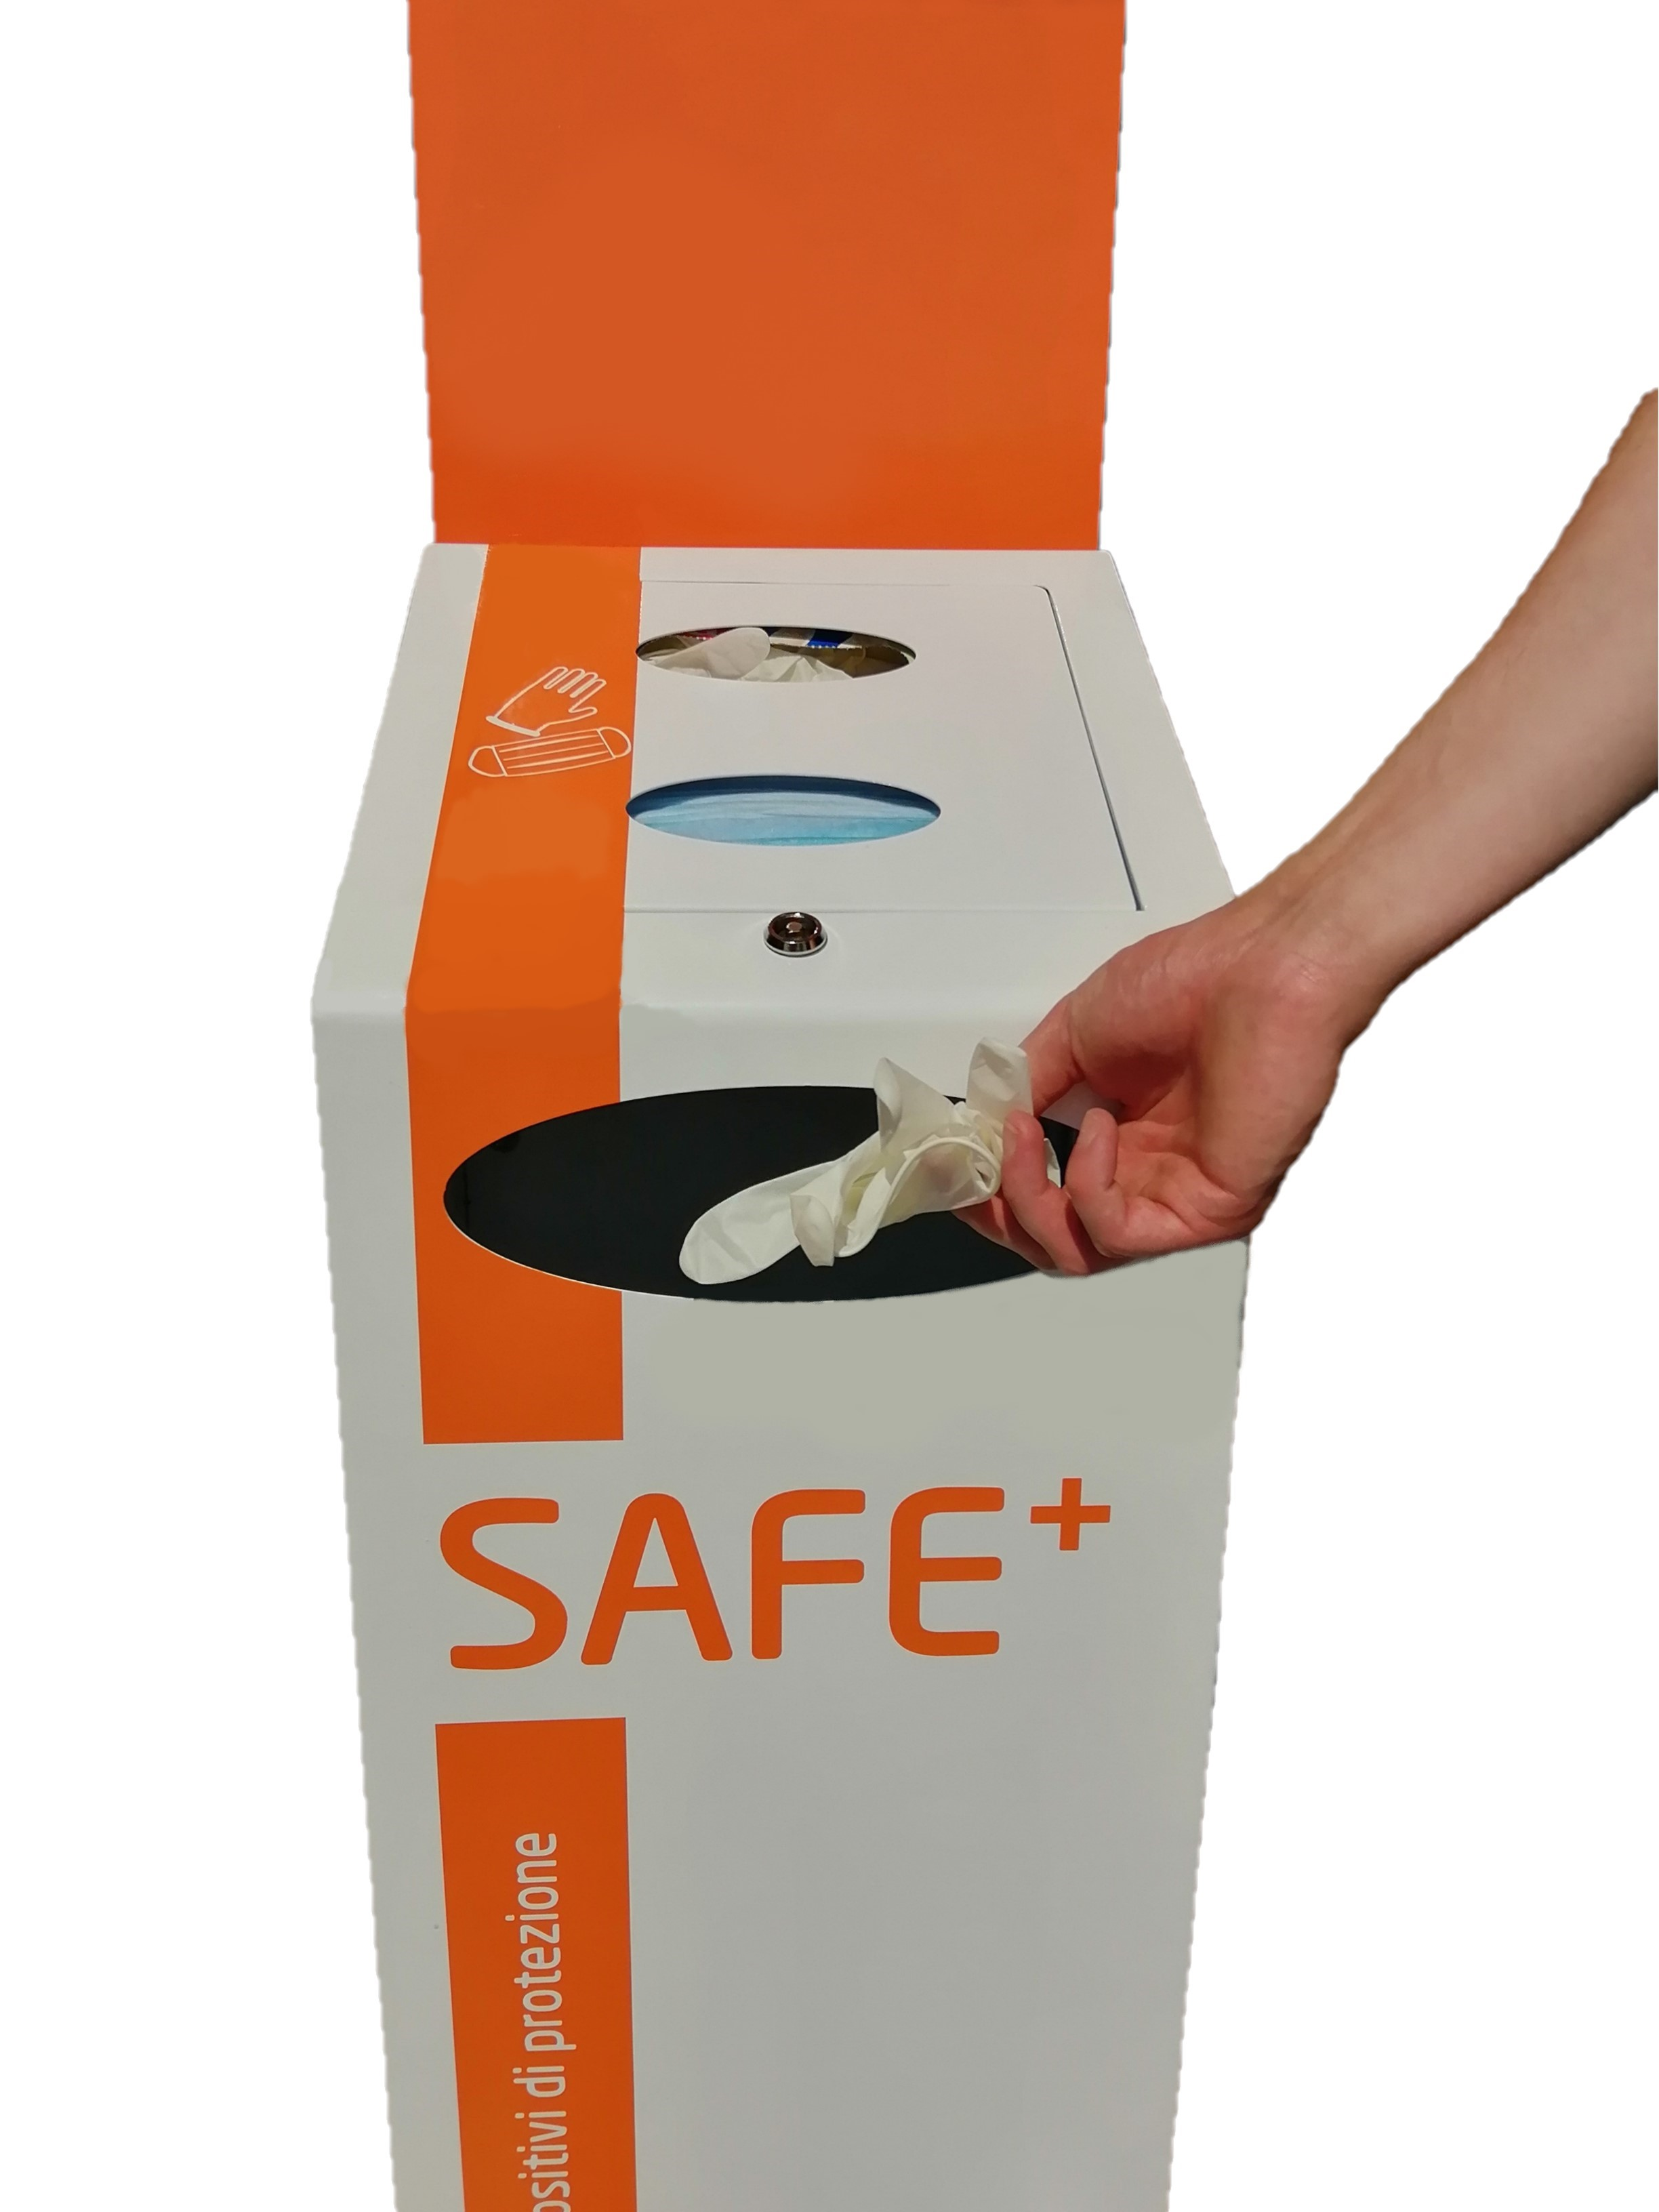 SAFE+ NEW PRODUCT BY A.U.ESSE